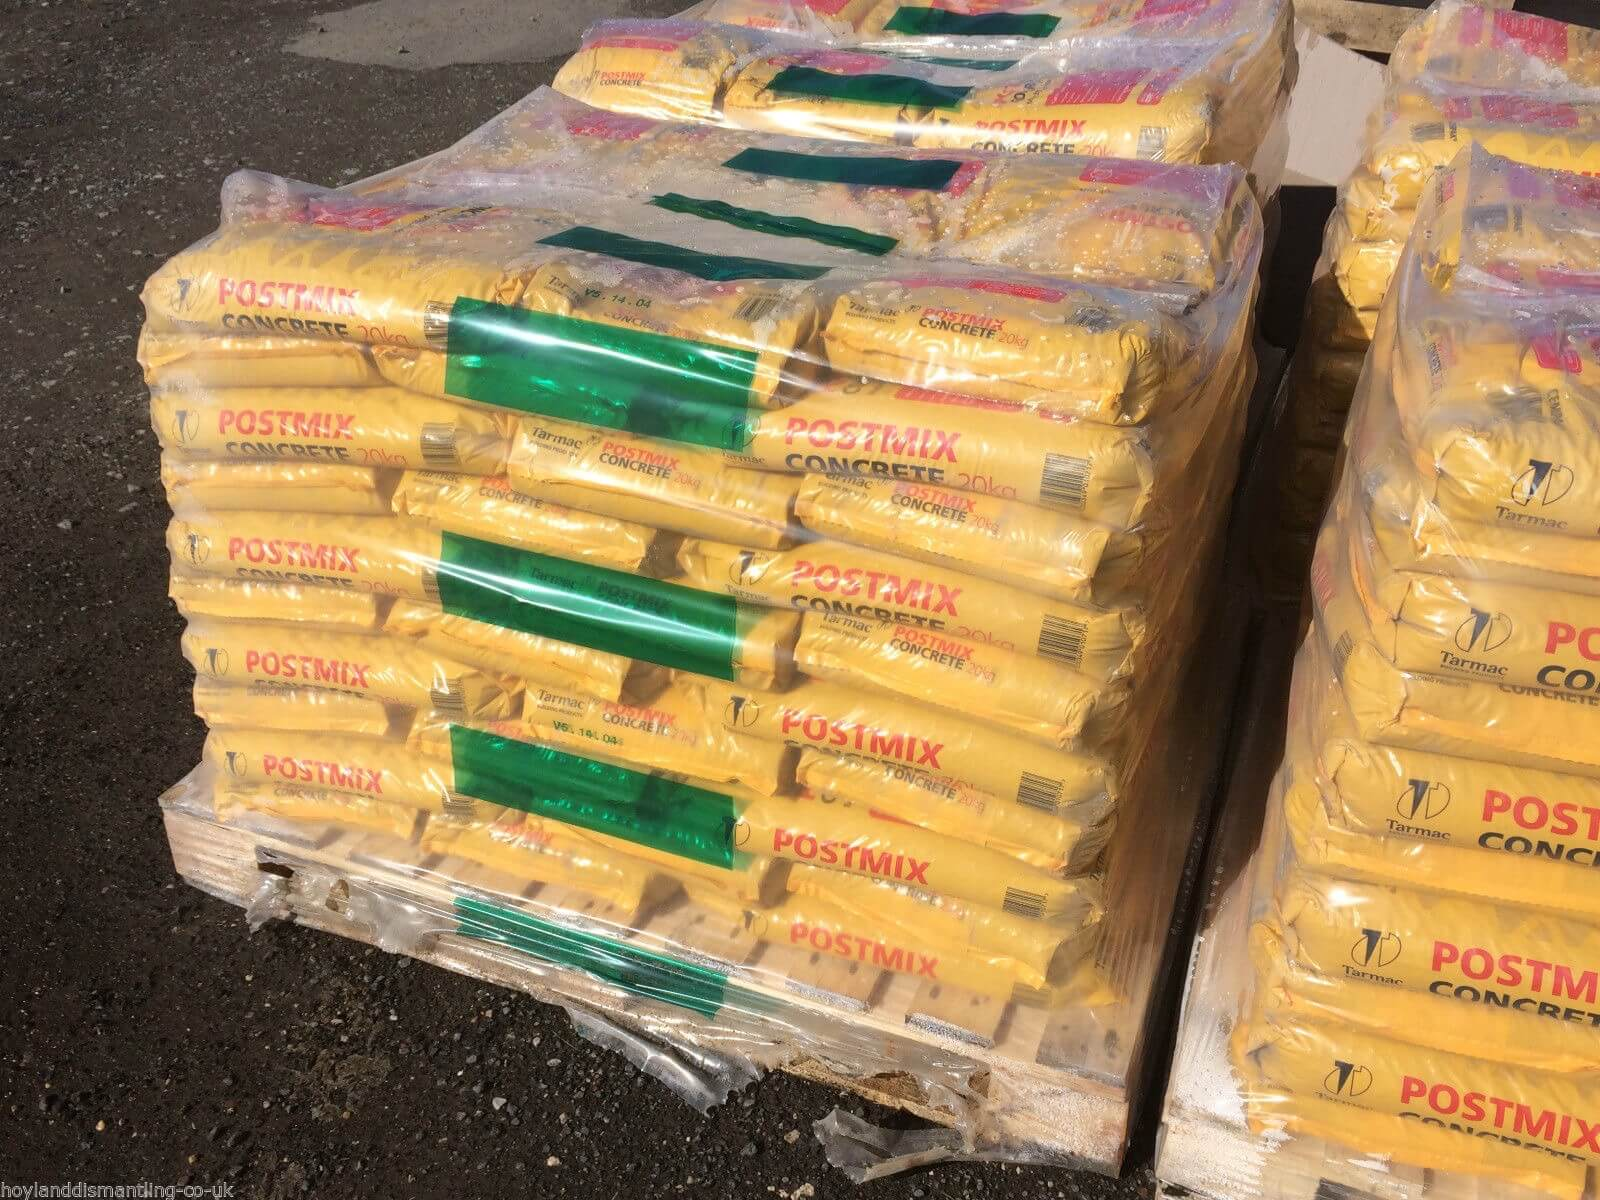 Image for Full pallet of Postcrete (72 bags)